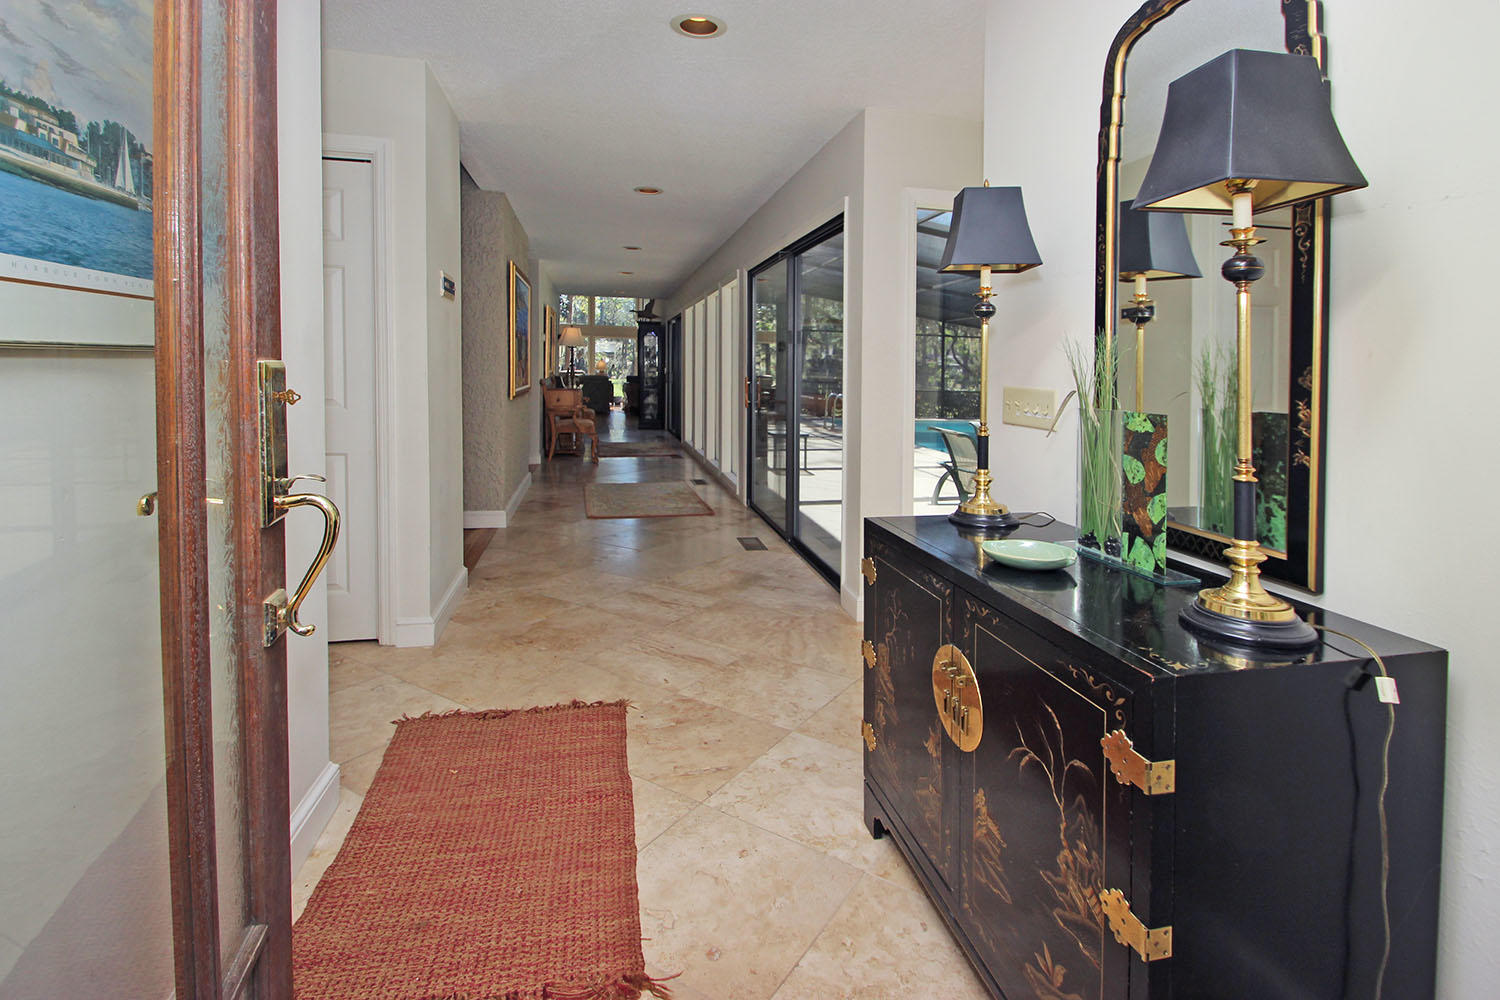 Foyer entrance